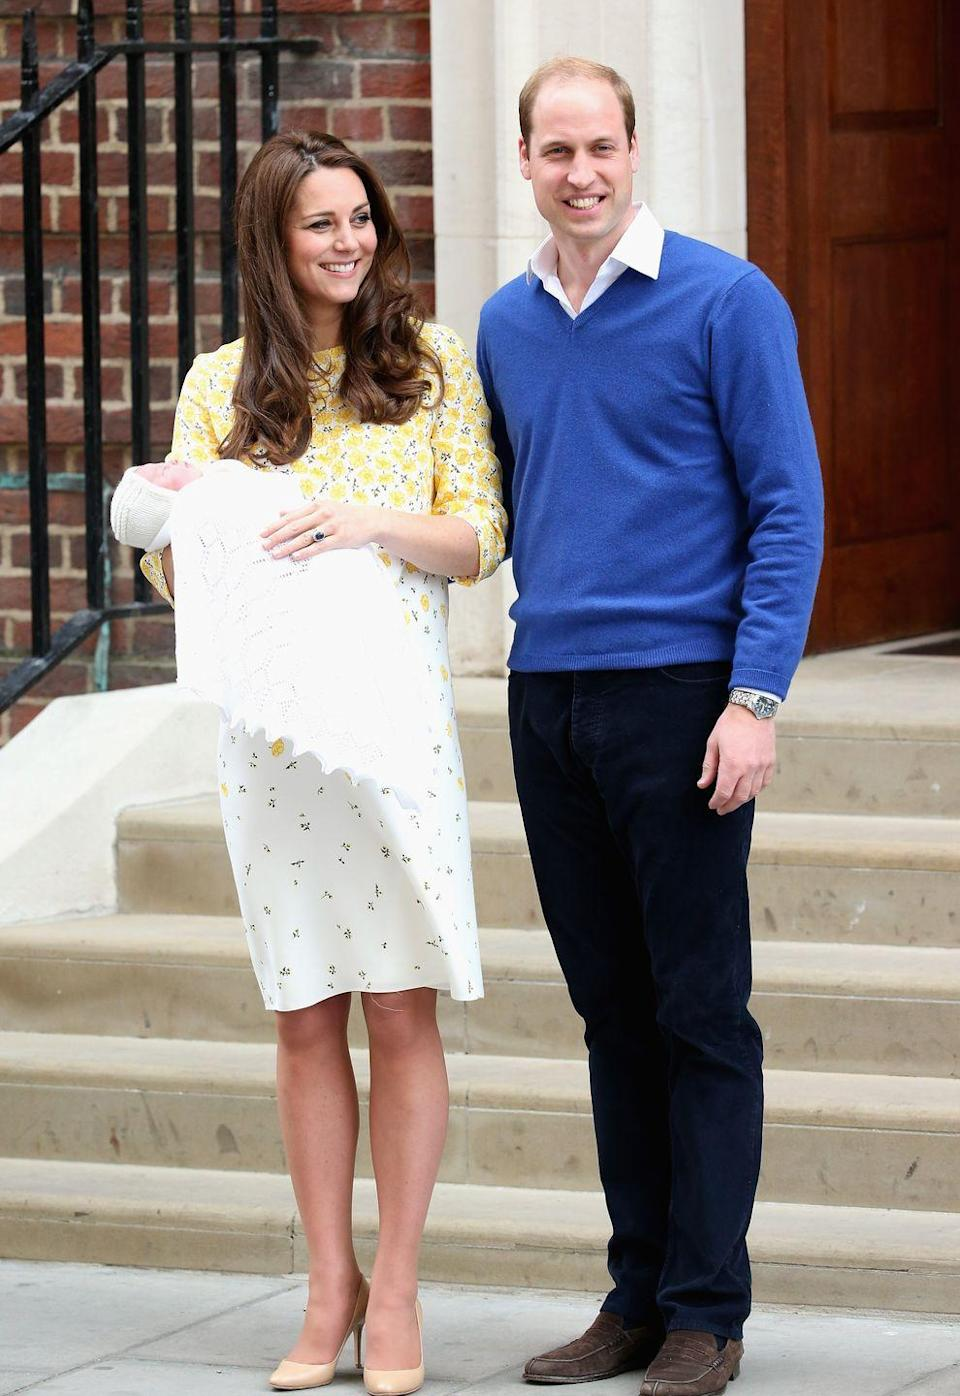 """<p>""""<a href=""""http://people.com/royals/royal-baby-kate-middleton-labor-details-and-epidural/"""" rel=""""nofollow noopener"""" target=""""_blank"""" data-ylk=""""slk:Everything went extremely well"""" class=""""link rapid-noclick-resp"""">Everything went extremely well</a>"""" during the birth of Princess Charlotte at 8:34 a.m. on May 2, 2015, according to <em>People</em>. The duchess gave birth two-and-a-half hours and <a href=""""https://www.usmagazine.com/celebrity-moms/news/kate-middleton-birth-details-royal-baby-delivered-without-epidural-201545/"""" rel=""""nofollow noopener"""" target=""""_blank"""" data-ylk=""""slk:without an epidural"""" class=""""link rapid-noclick-resp"""">without an epidural</a> after being admitted to the Lindo Wing of St. Mary's Hospital, and she and her husband """"celebrated the birth by toasting champagne."""" </p><p><em>Left</em>: The Duke and Duchess of Cambridge leave St. Mary's Hospital with the newborn Princess Charlotte on May 2, 2015.</p>"""